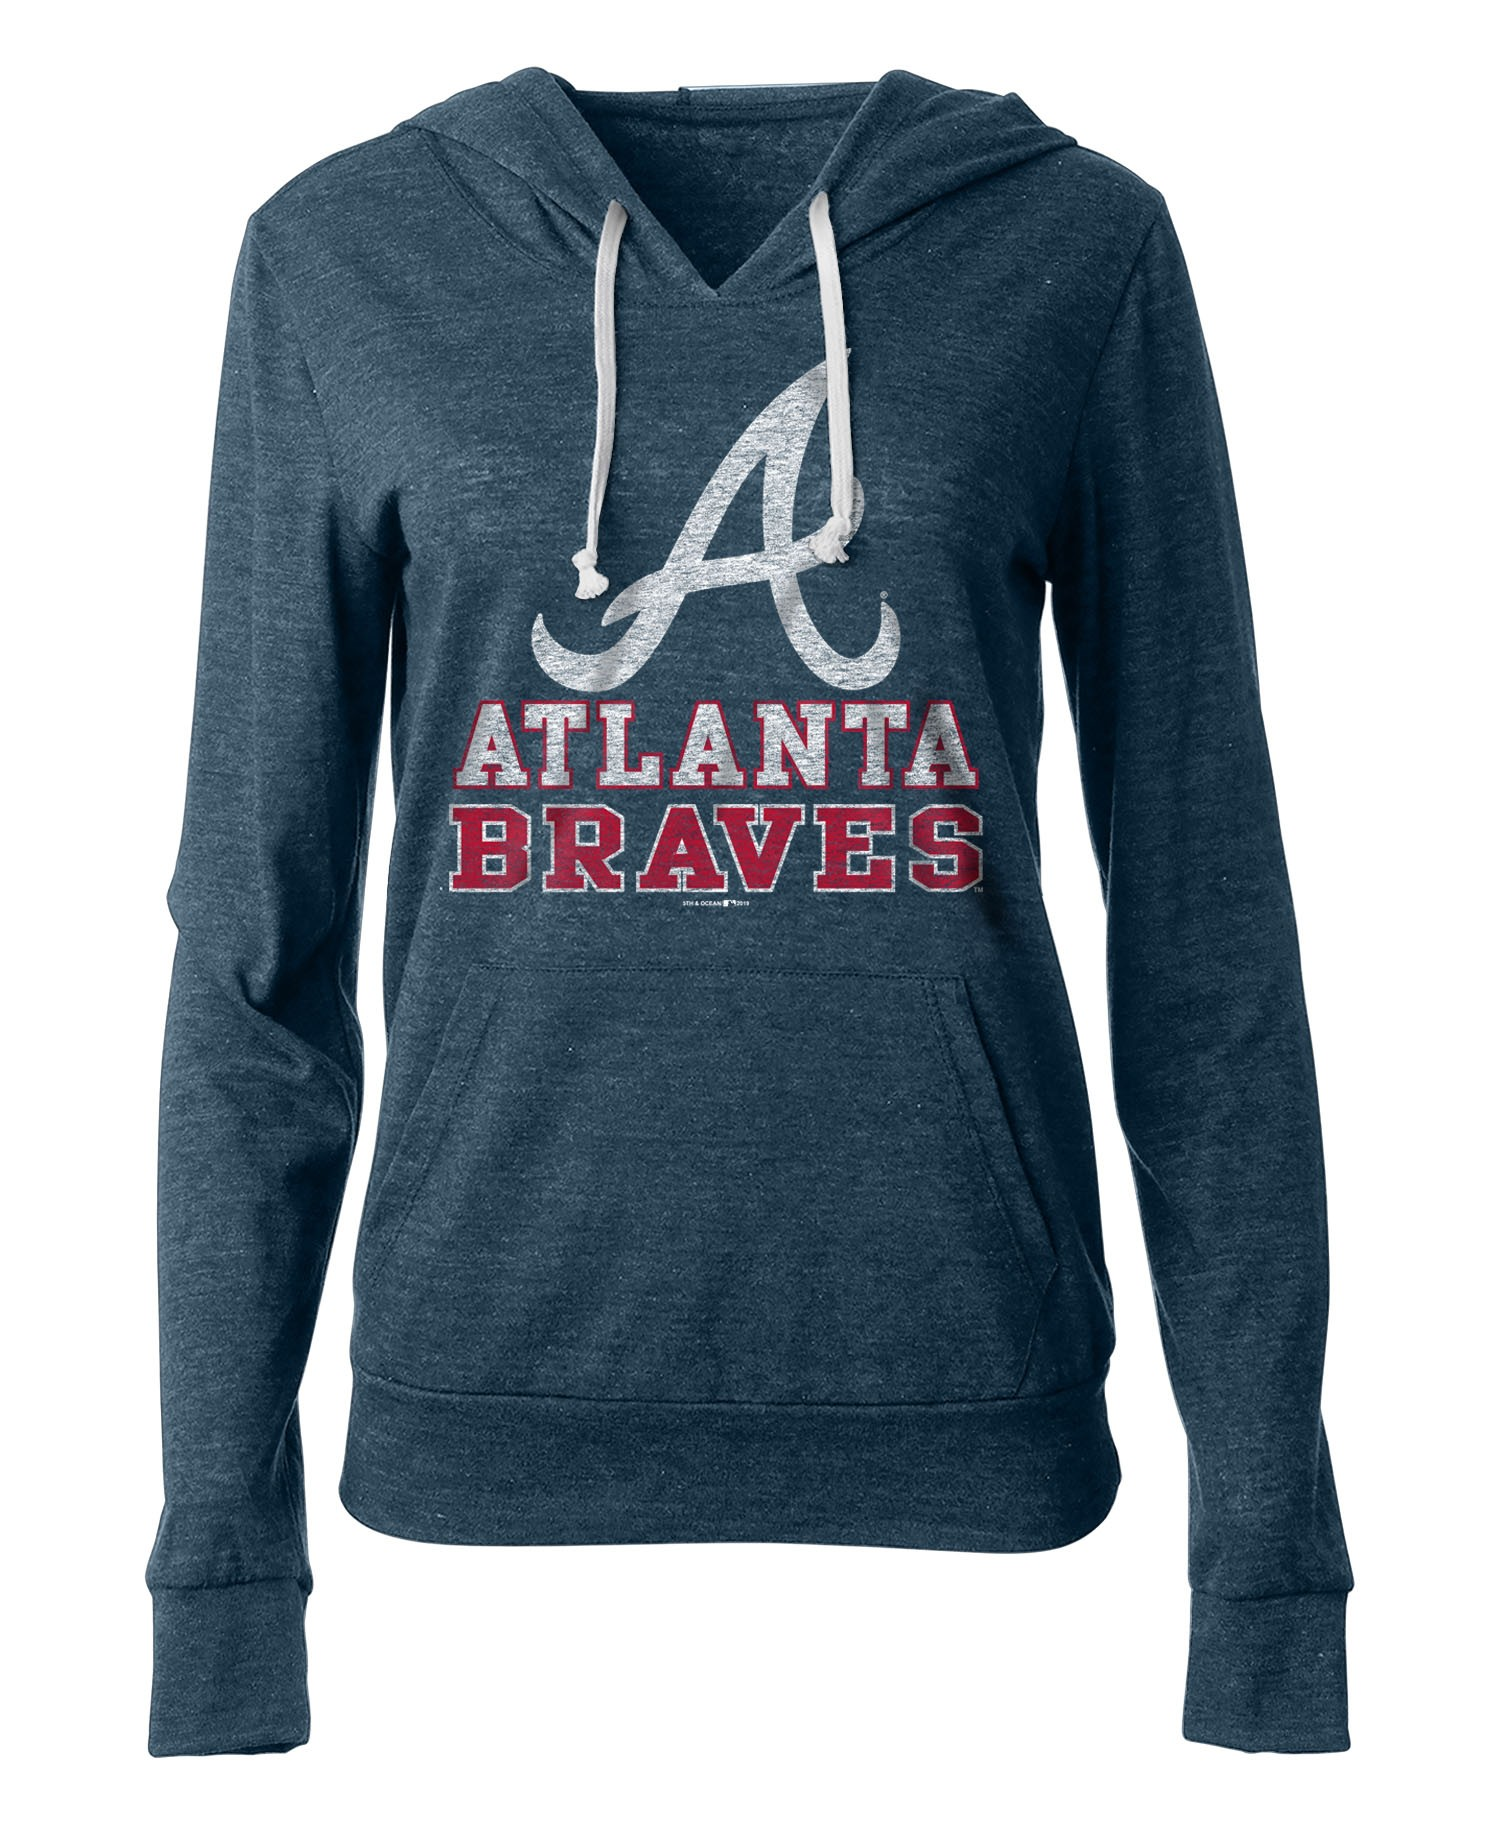 free shipping f2619 c54f9 Details about Atlanta Braves Women's New Era MLB